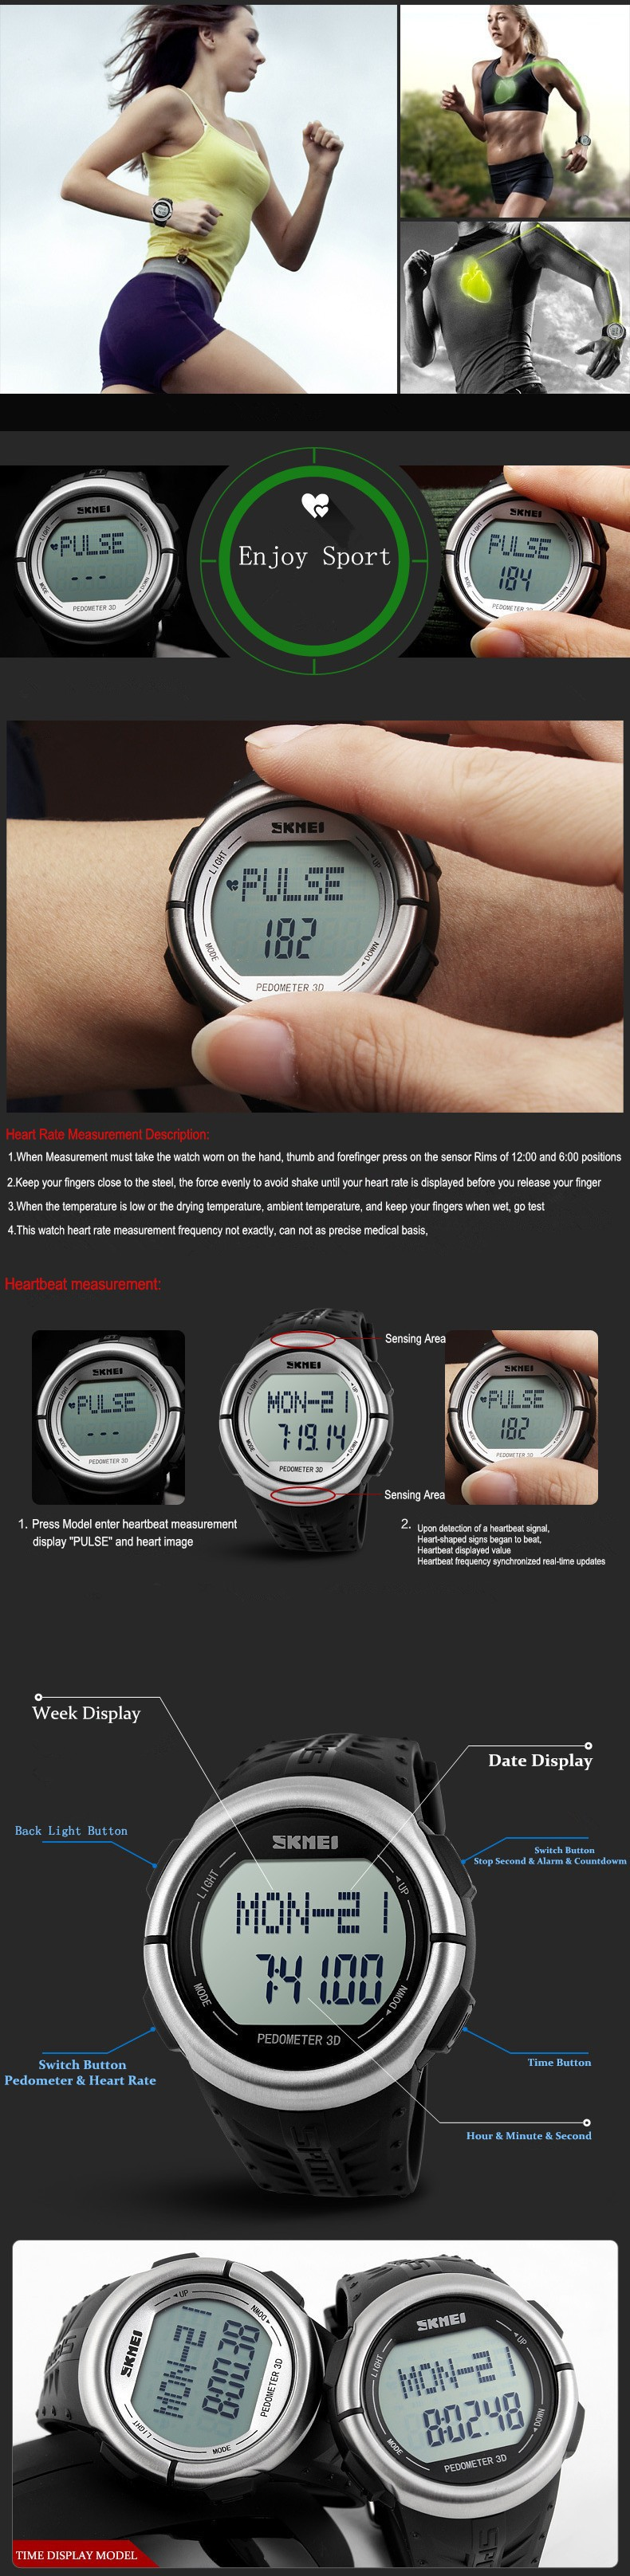 skmei sport watch 1058.3